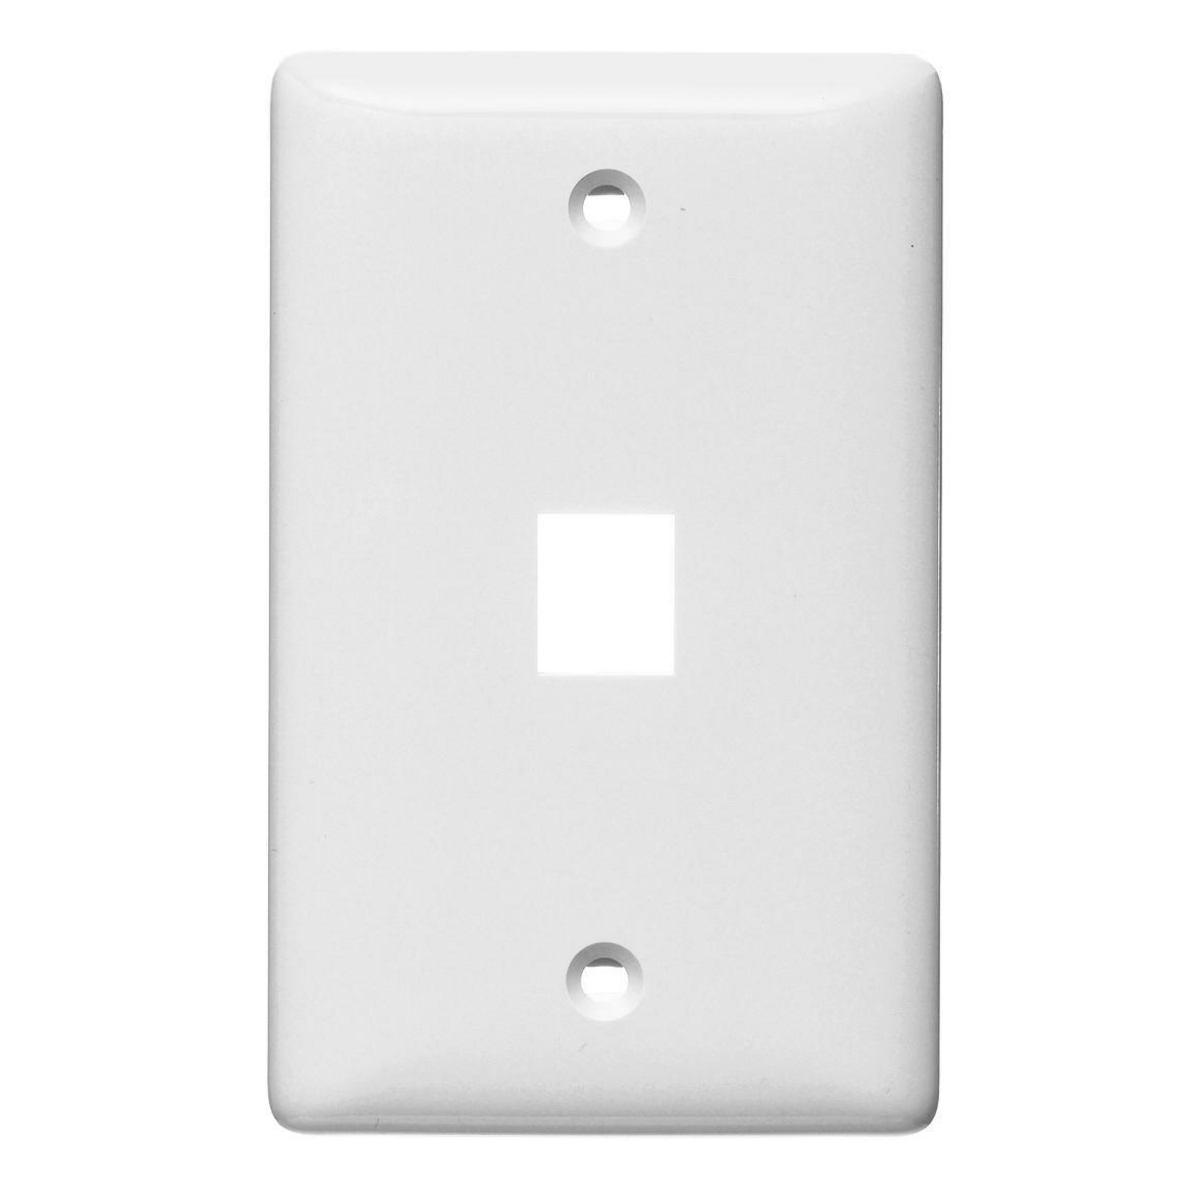 Hubbell NSP11W 1-Gang White Thermoplastic Standard 1-Port Data Communication Face Plate